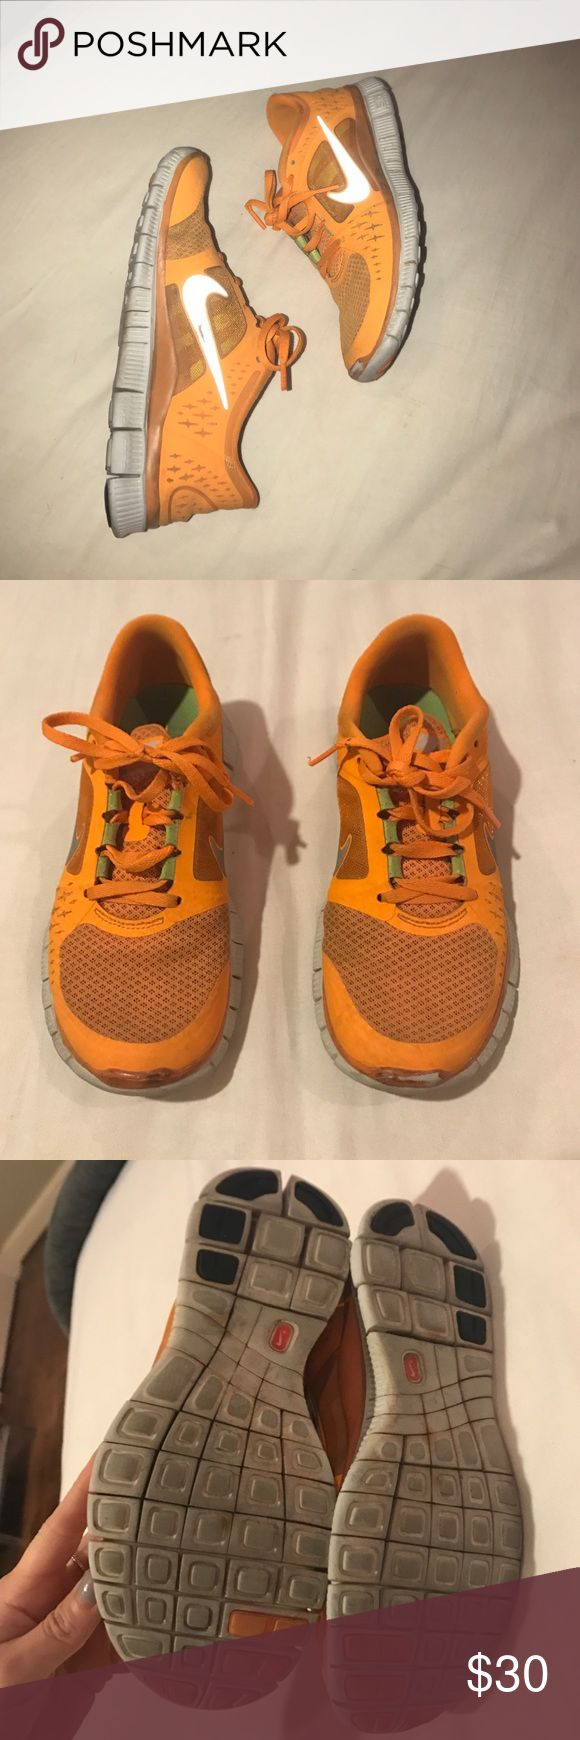 Nike free runner shoes Orange Nike free running shoes. These are pretty worn in but still look good! The color is bright and the Nike swoosh is reflective. Size 6.5. No trades please! :) Nike Shoes Athletic Shoes